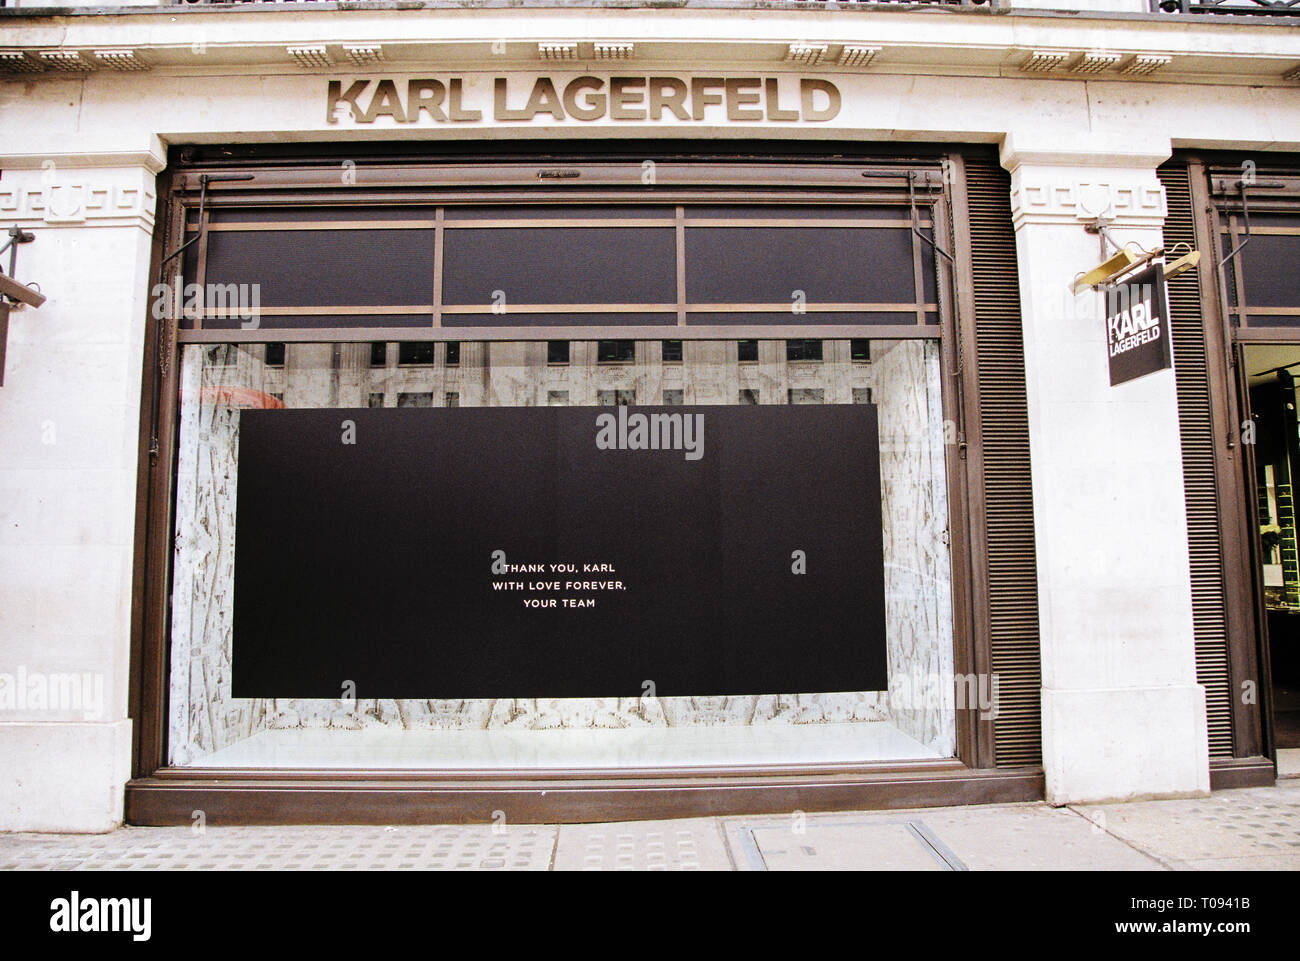 Karl Lagerfeld store with blacked out windows following Karls's death, Regent street, London, England, United Kingdom. Stock Photo